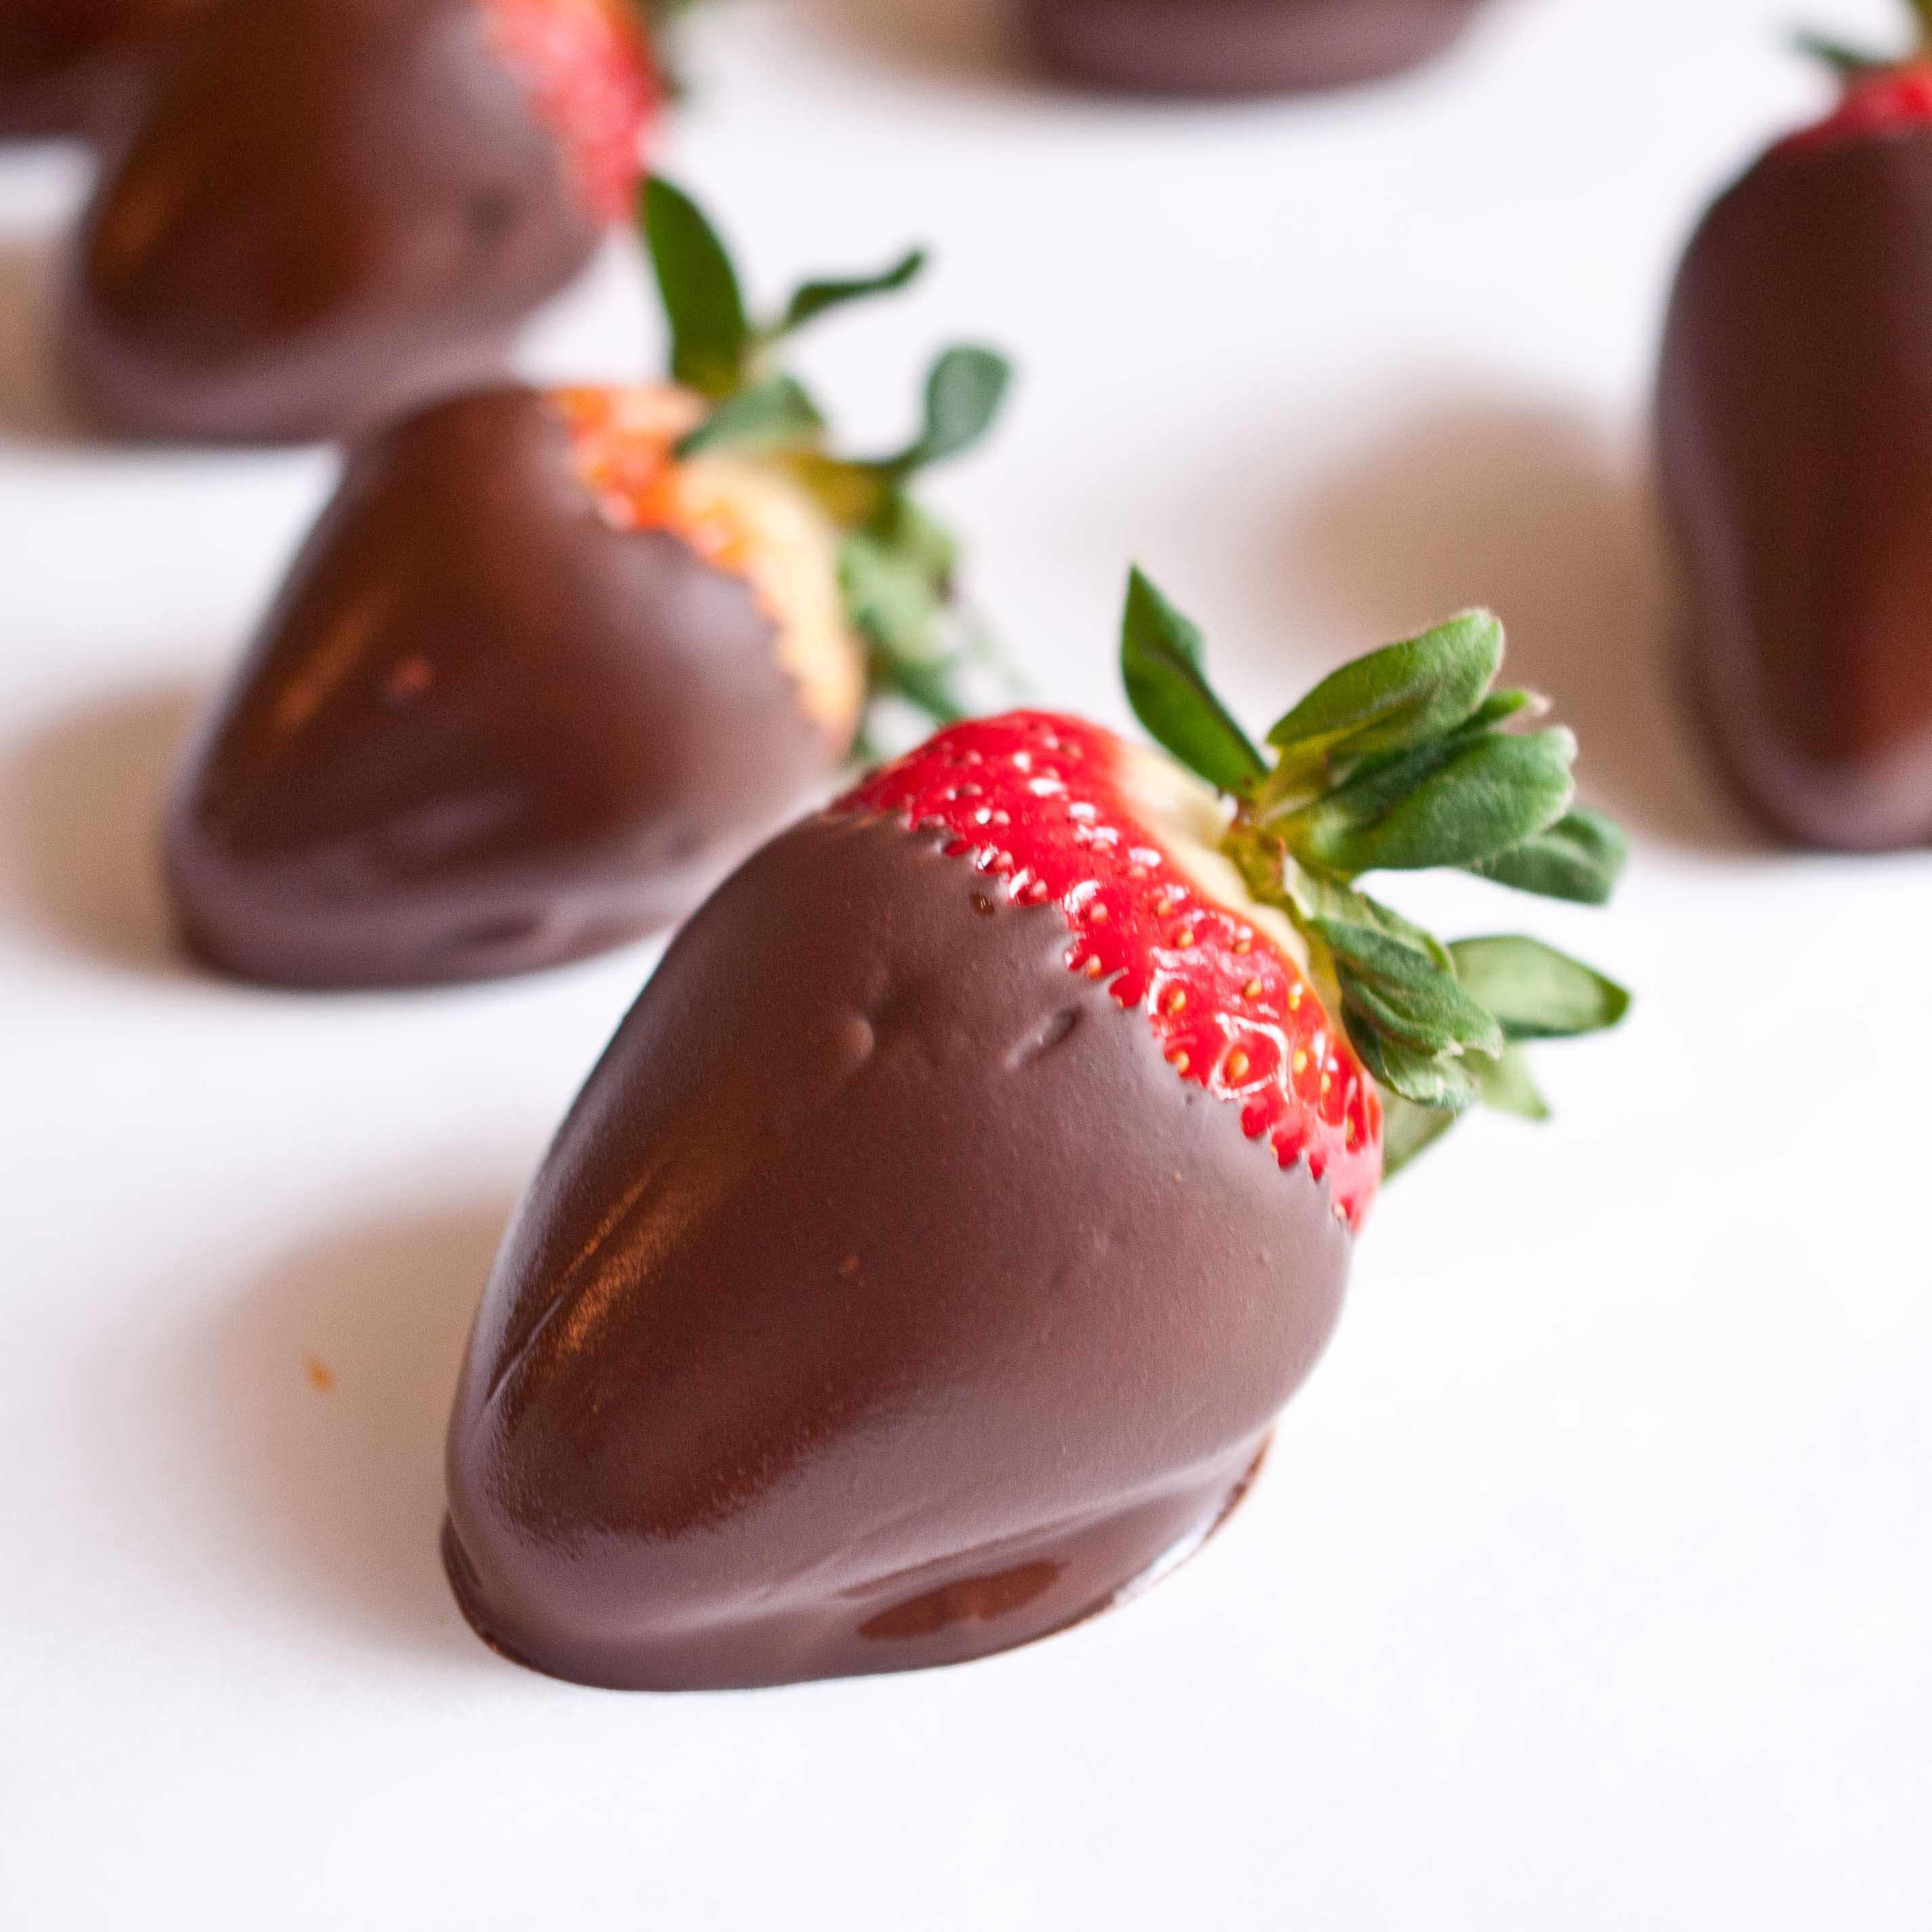 Chocolate Covered Strawberries from Domestic Fits - Bake ...